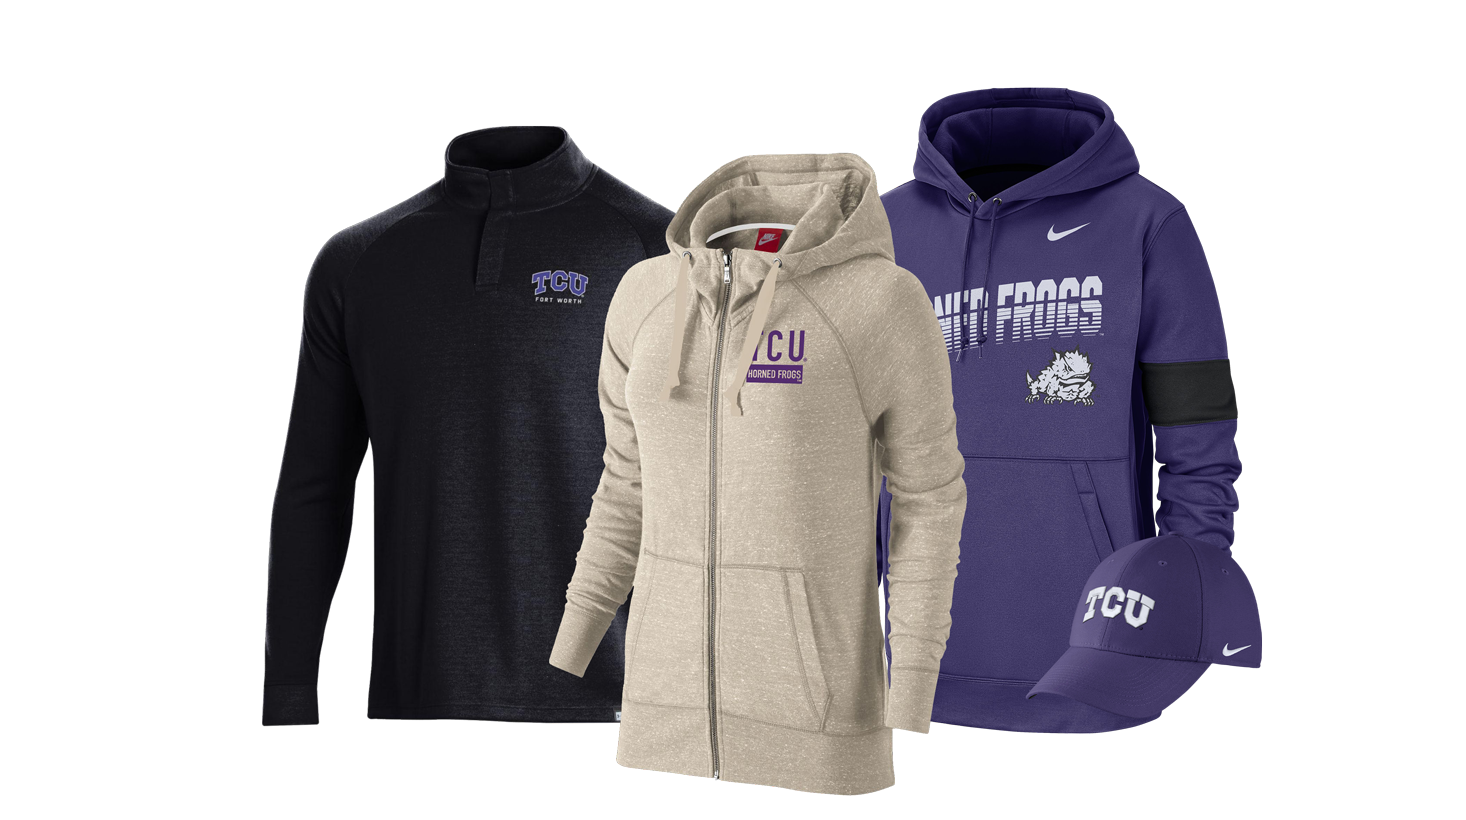 buy online 5ff3a 68c5c TCU Campus Store Apparel, Merchandise, & Gifts